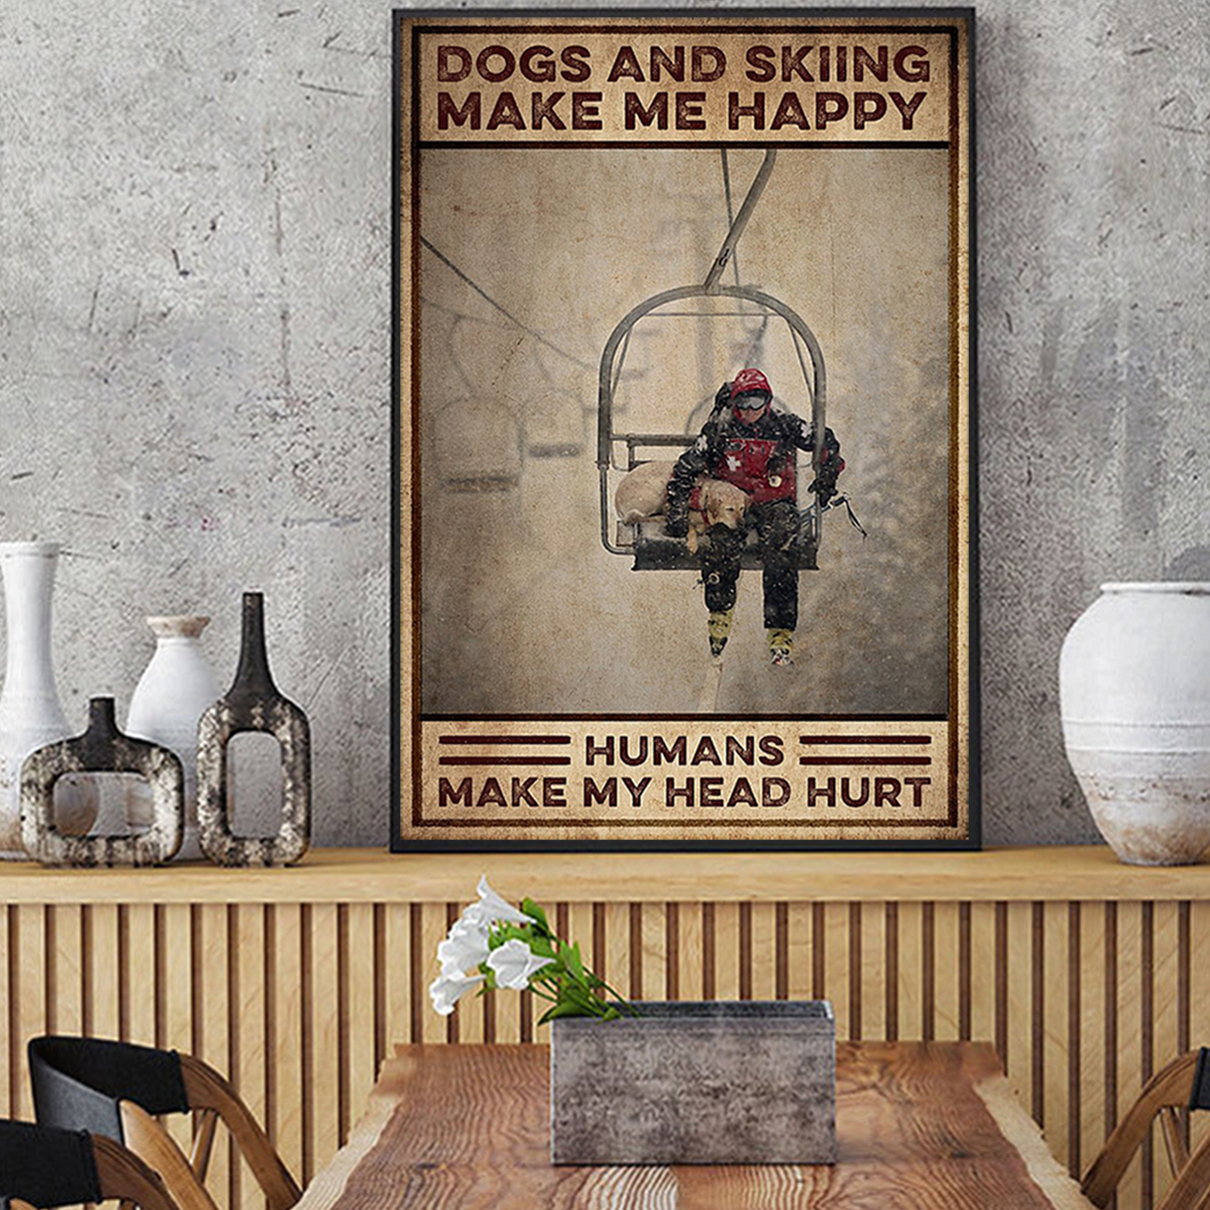 Dogs and skiing make me happy humans make my head hurt poster A3